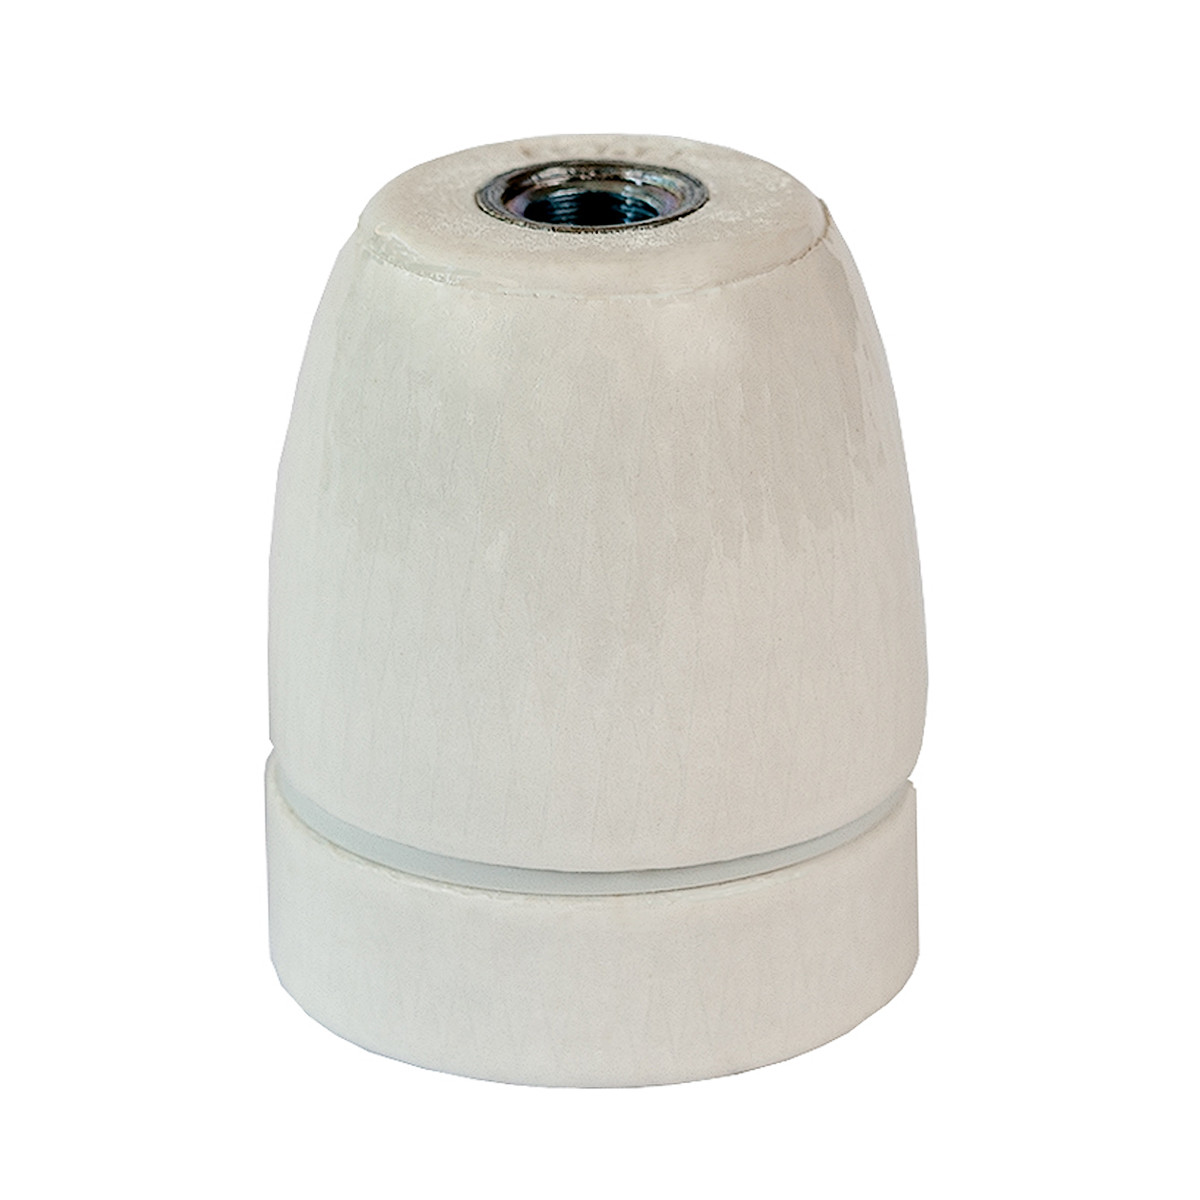 Porcelain Lamp Holder E27 Glazed